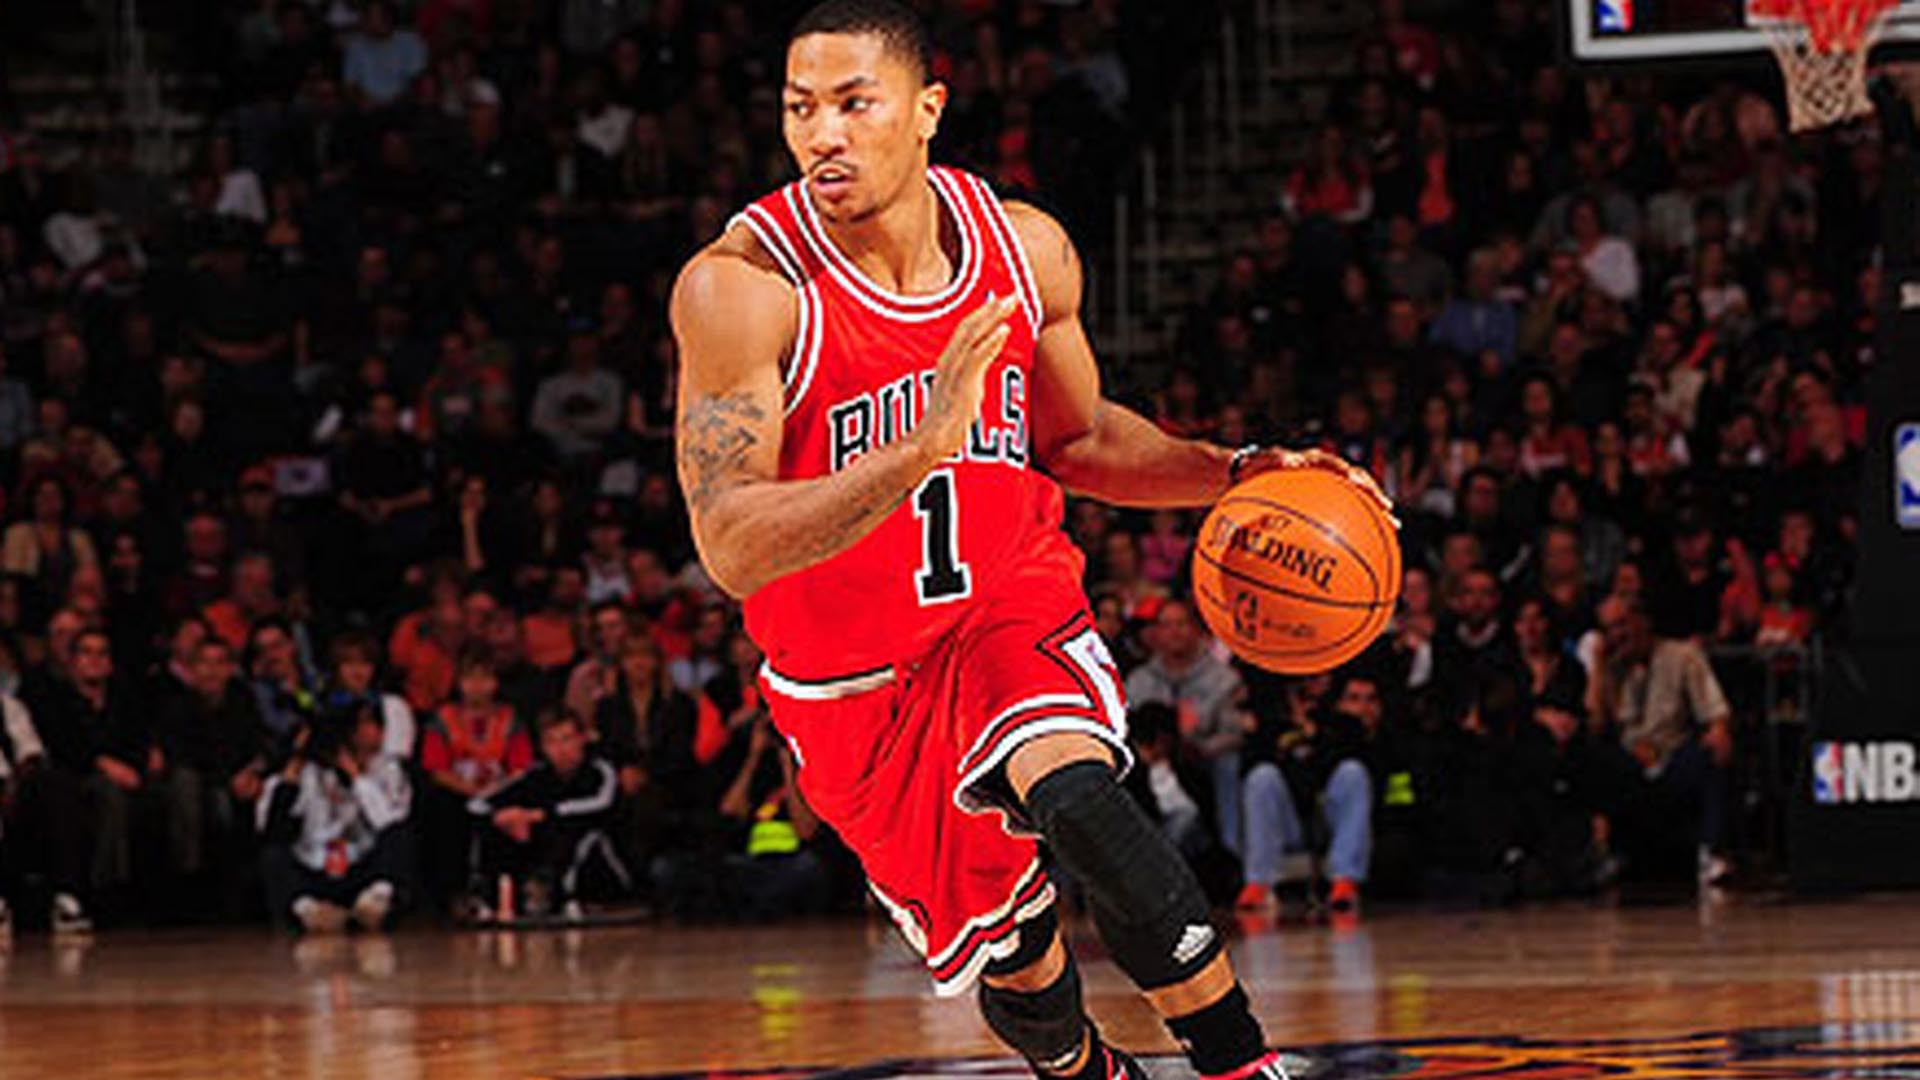 Derrick Rose Background